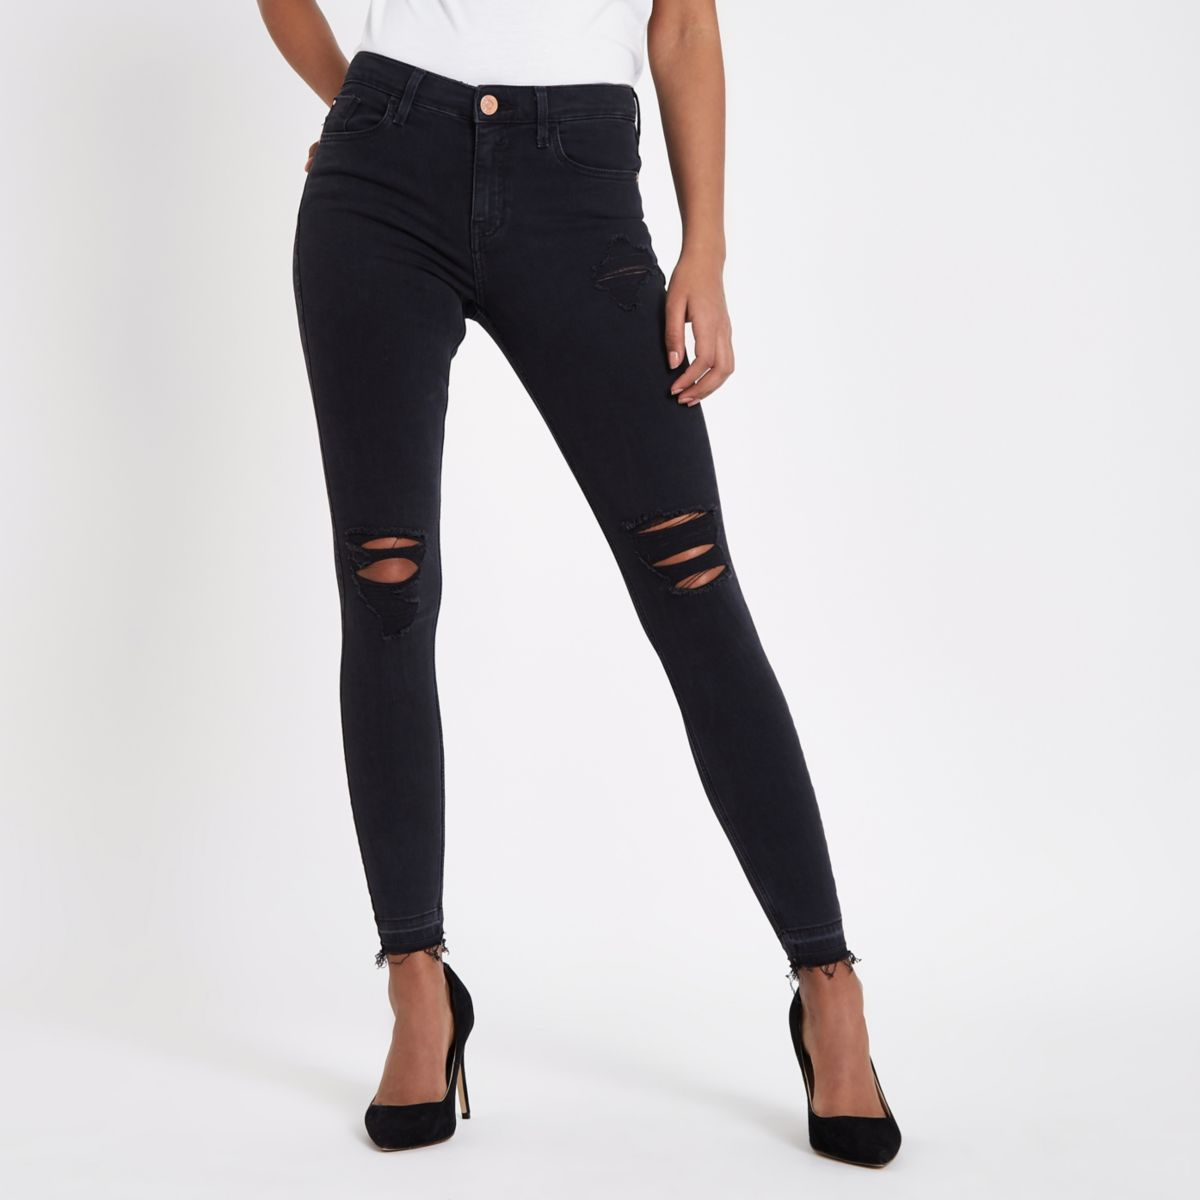 A true staple of every woman's wardrobe, our super-skinny black jean is versatile enough to go from day to night instantly.